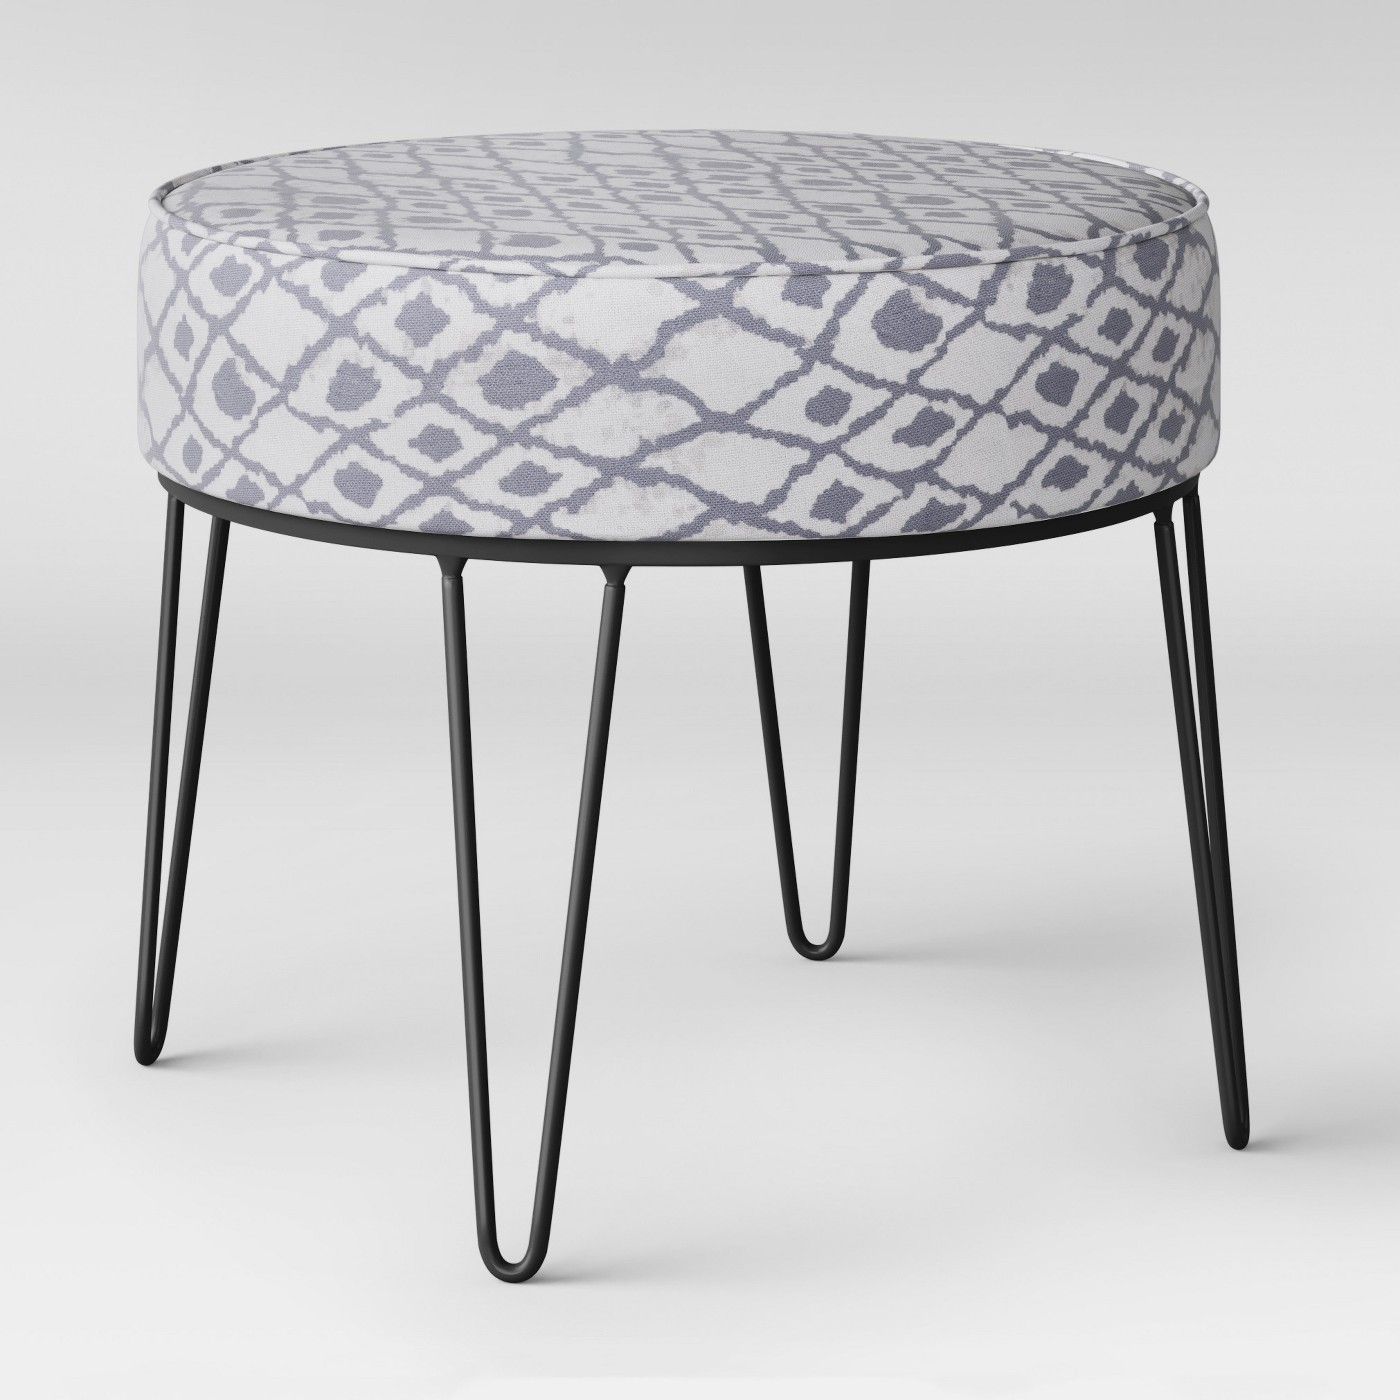 Carman Round Ottoman with Hairpin Legs Gray Ikat - Project 62™ - image 1 of 3